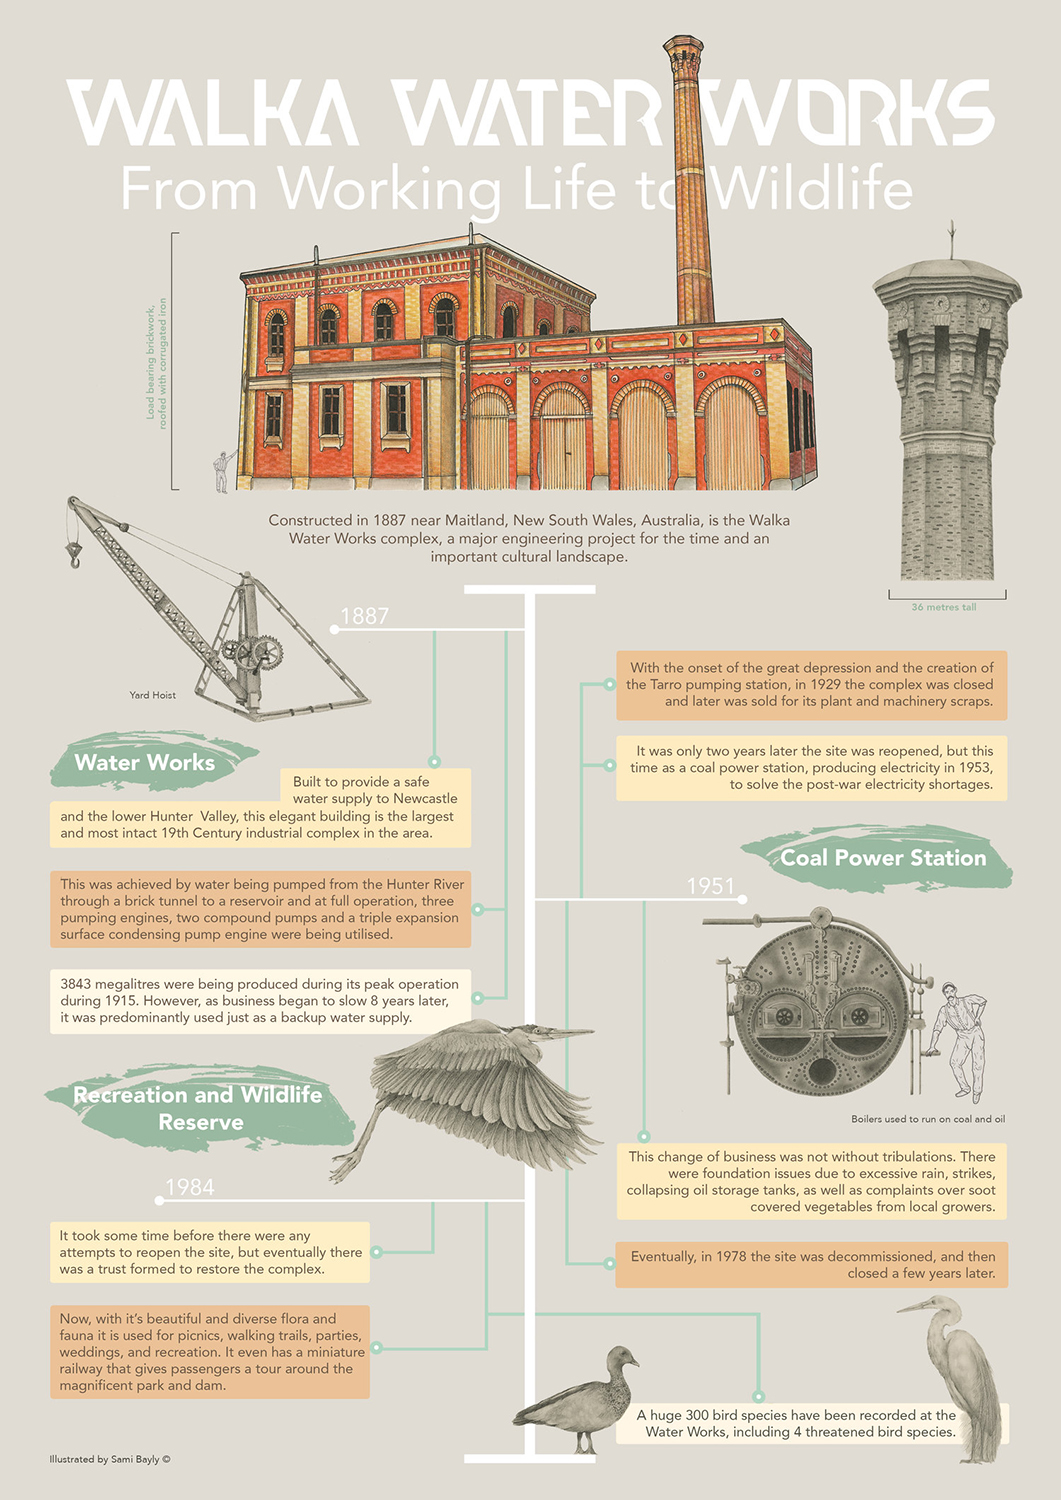 Walka Water Works Infographic